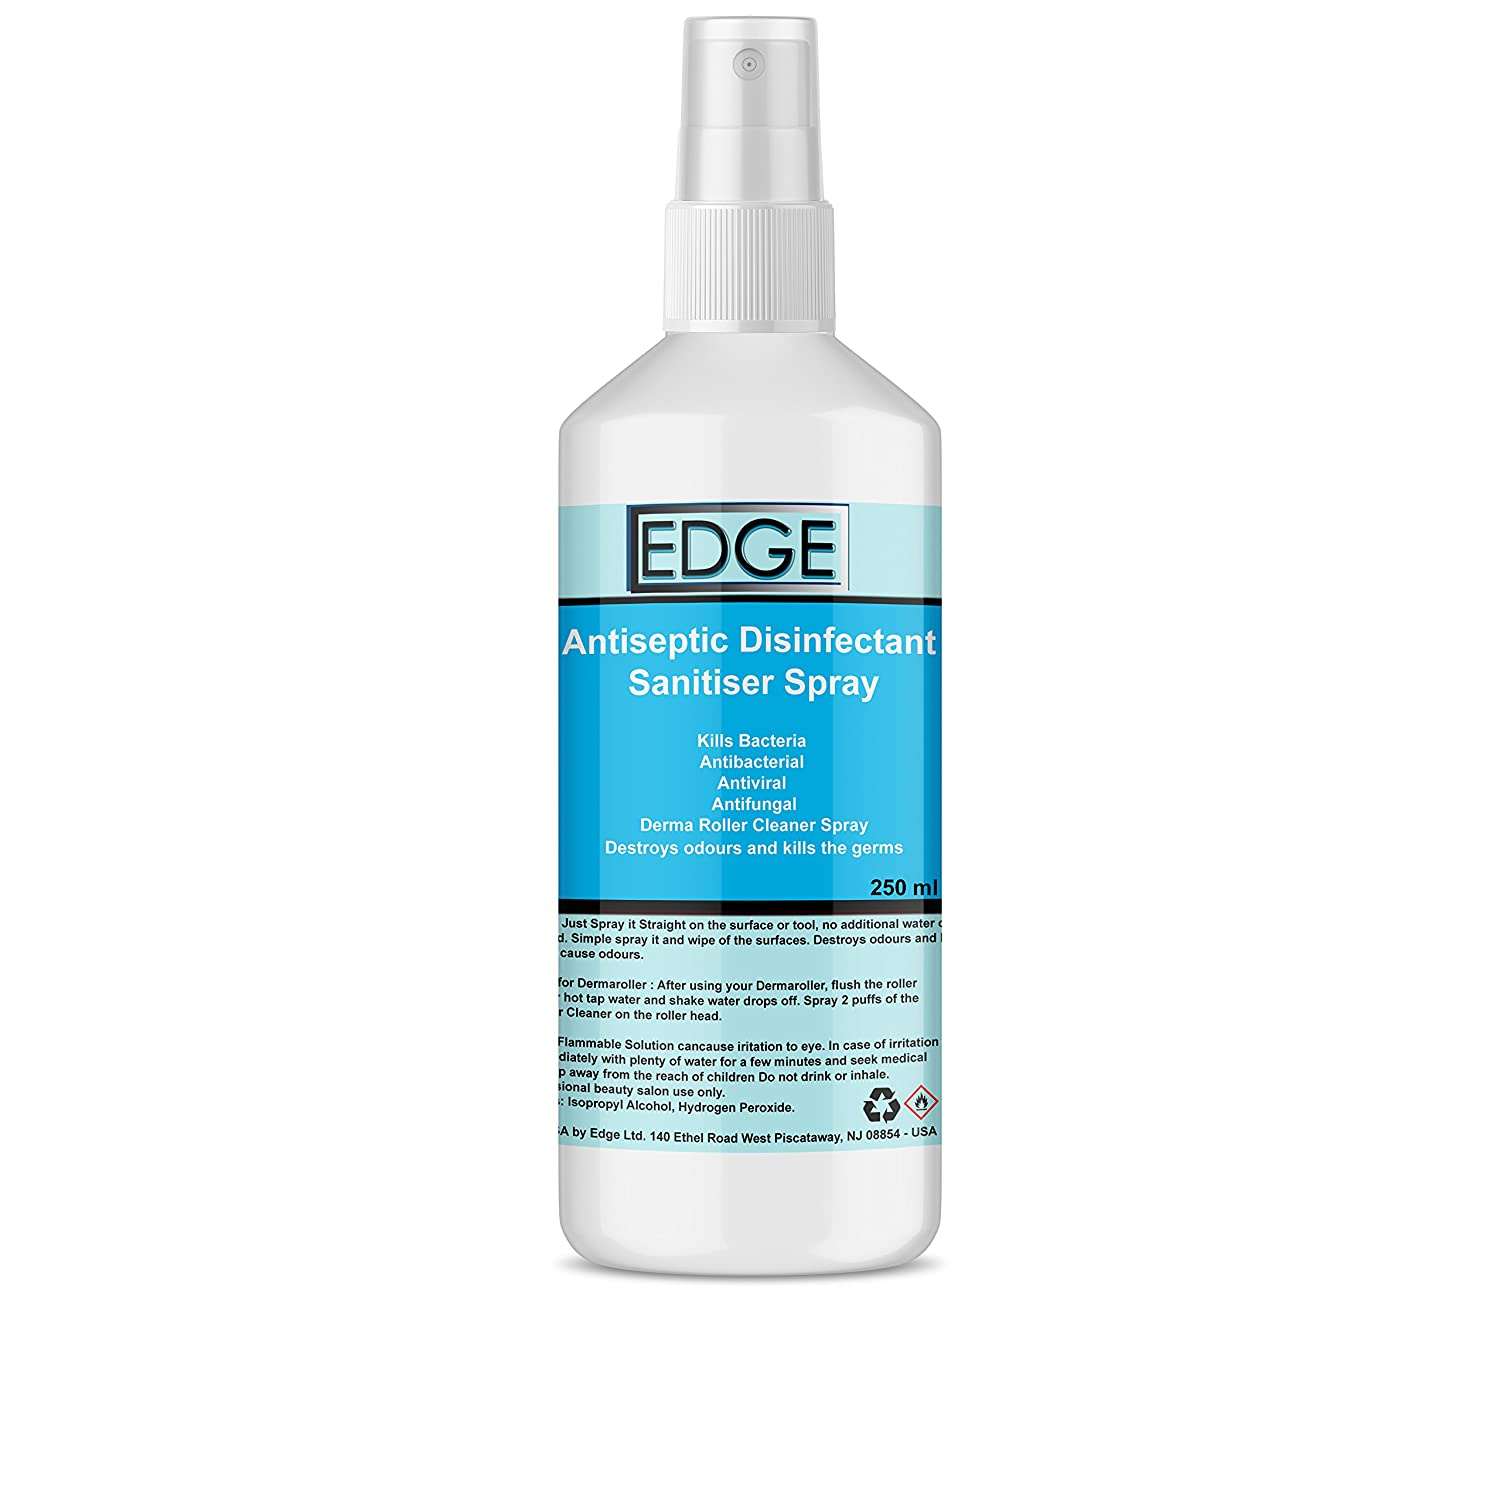 Antiseptic Disinfectant Sanitiser Spray For Cleaning Beauty Salon Equipment, Manicure Pedicure Equipment Tools, Derma Roller Cleaner Spray, Kills and Protects Against Germs, Bacteria, Natural & Synthetic Make Up Brushes Kills Bacteria, Antibacterial,